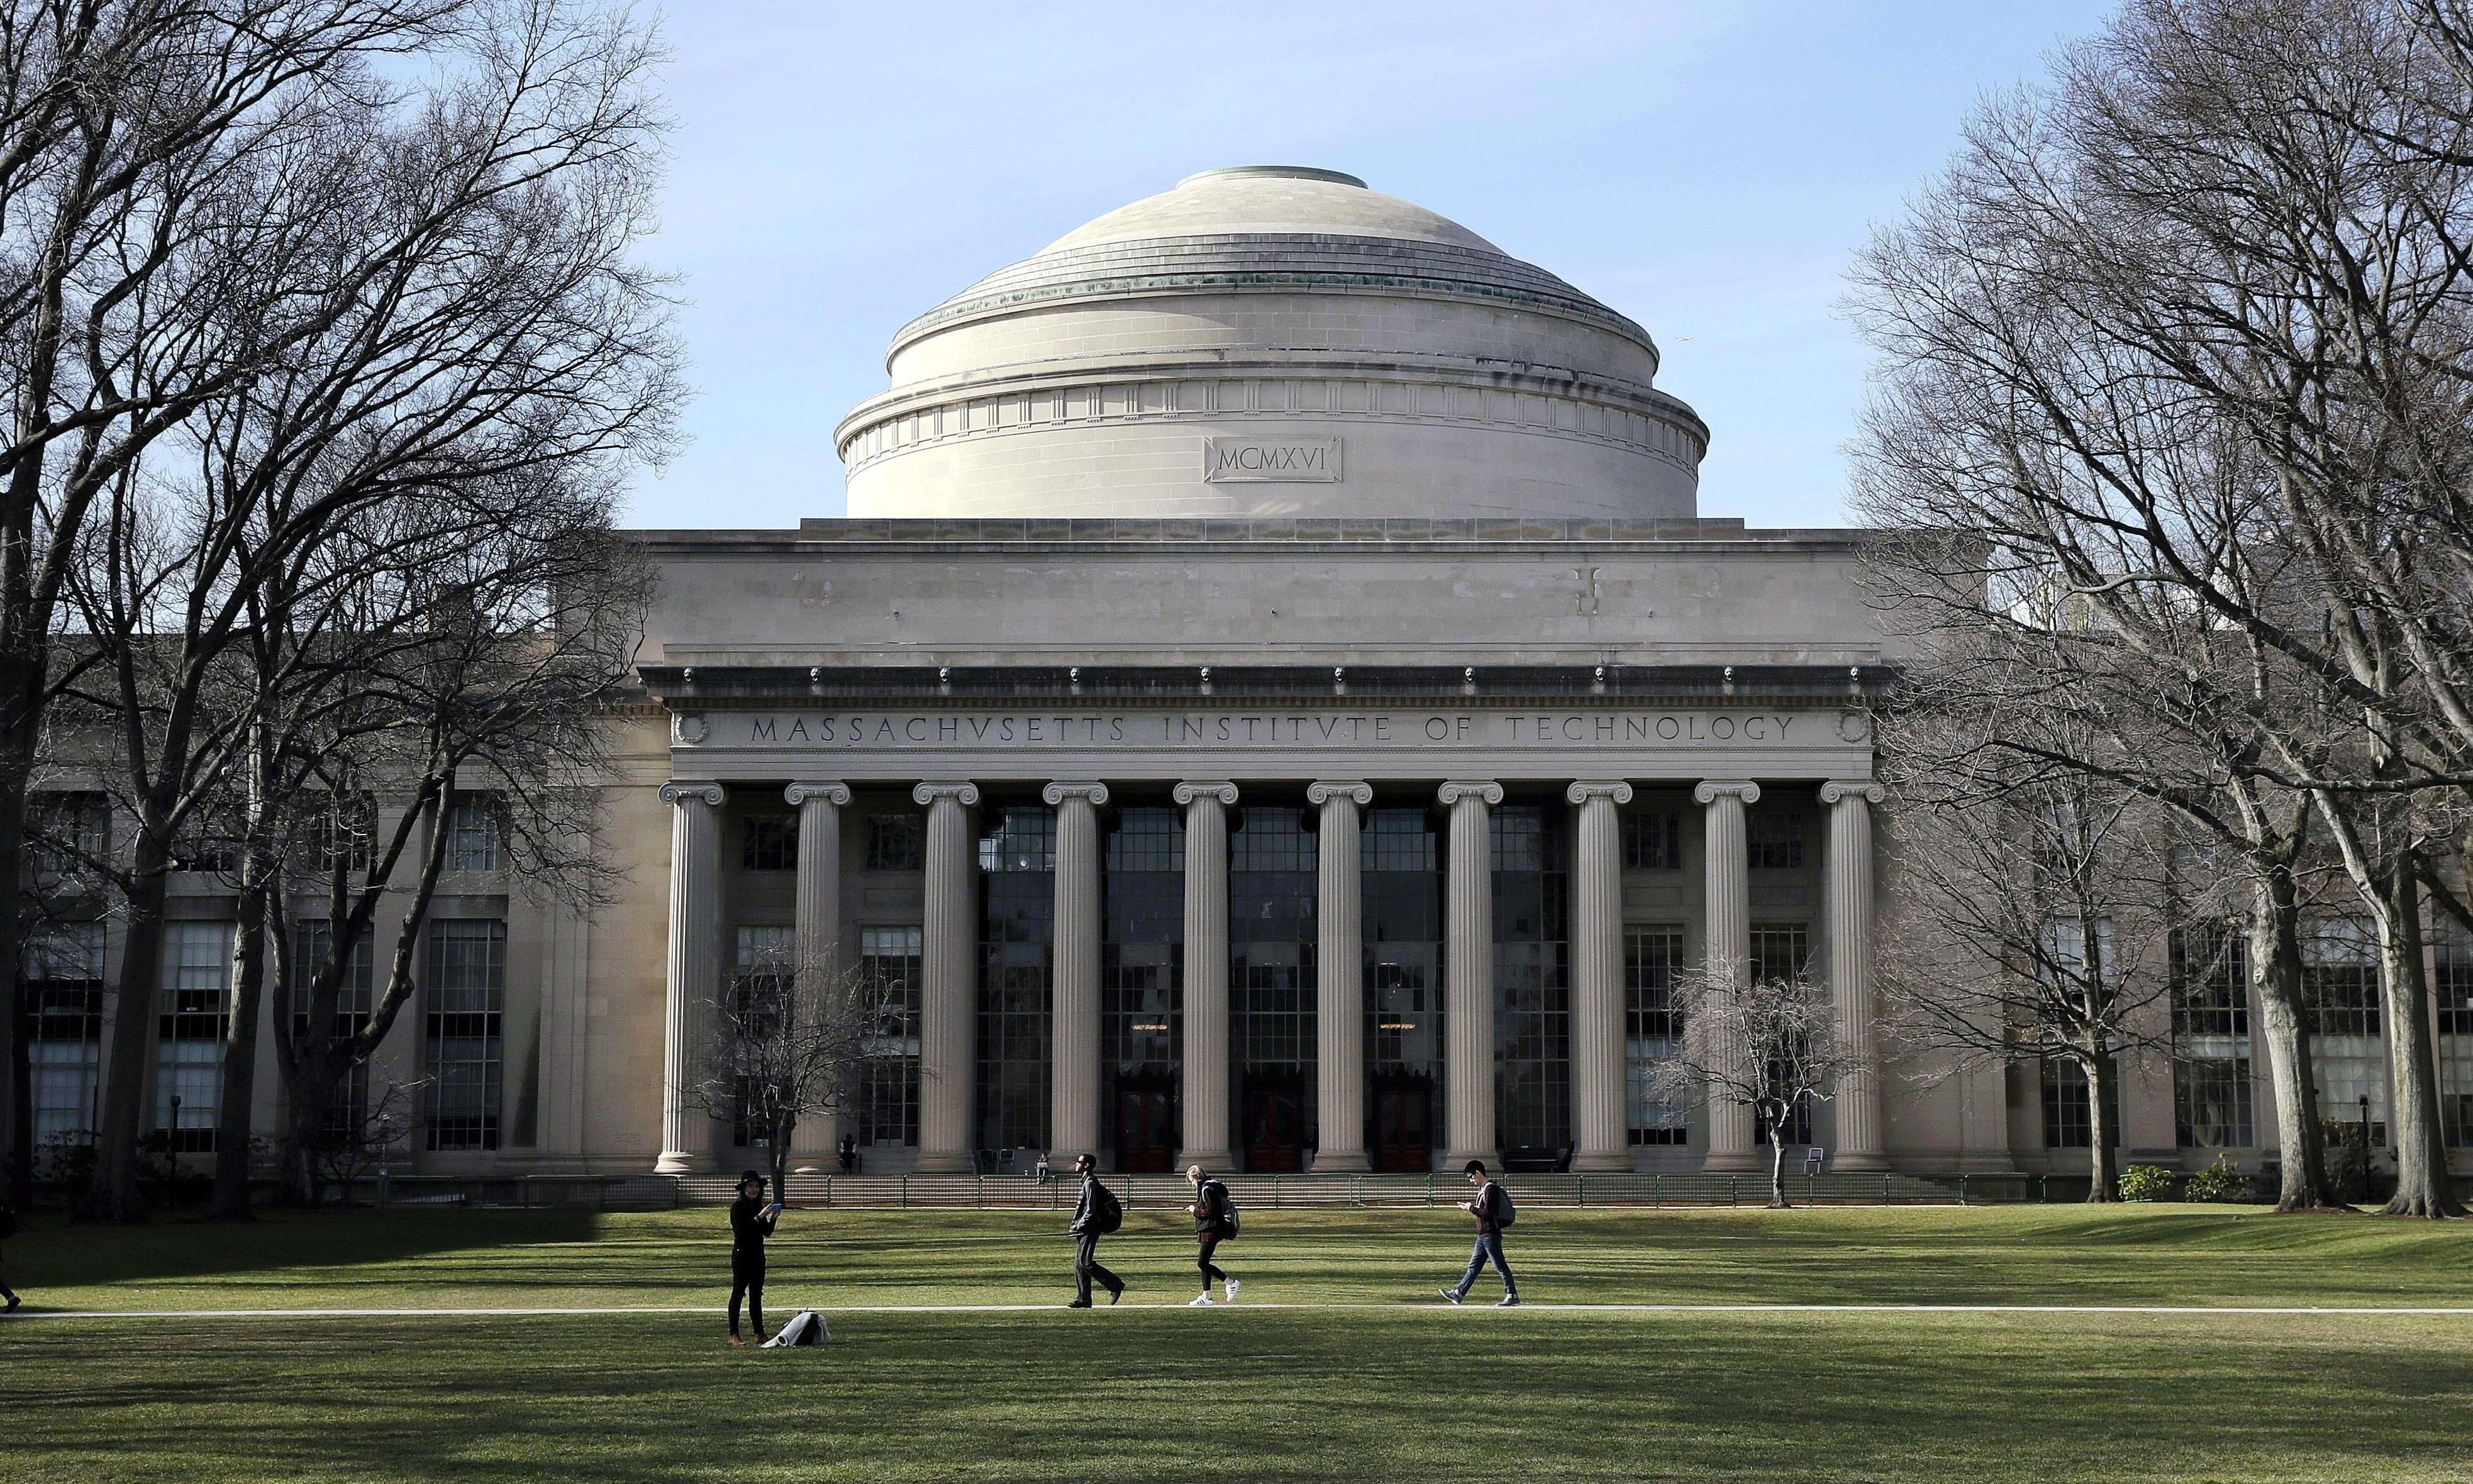 Can you solve it? Are you smart enough for MIT?